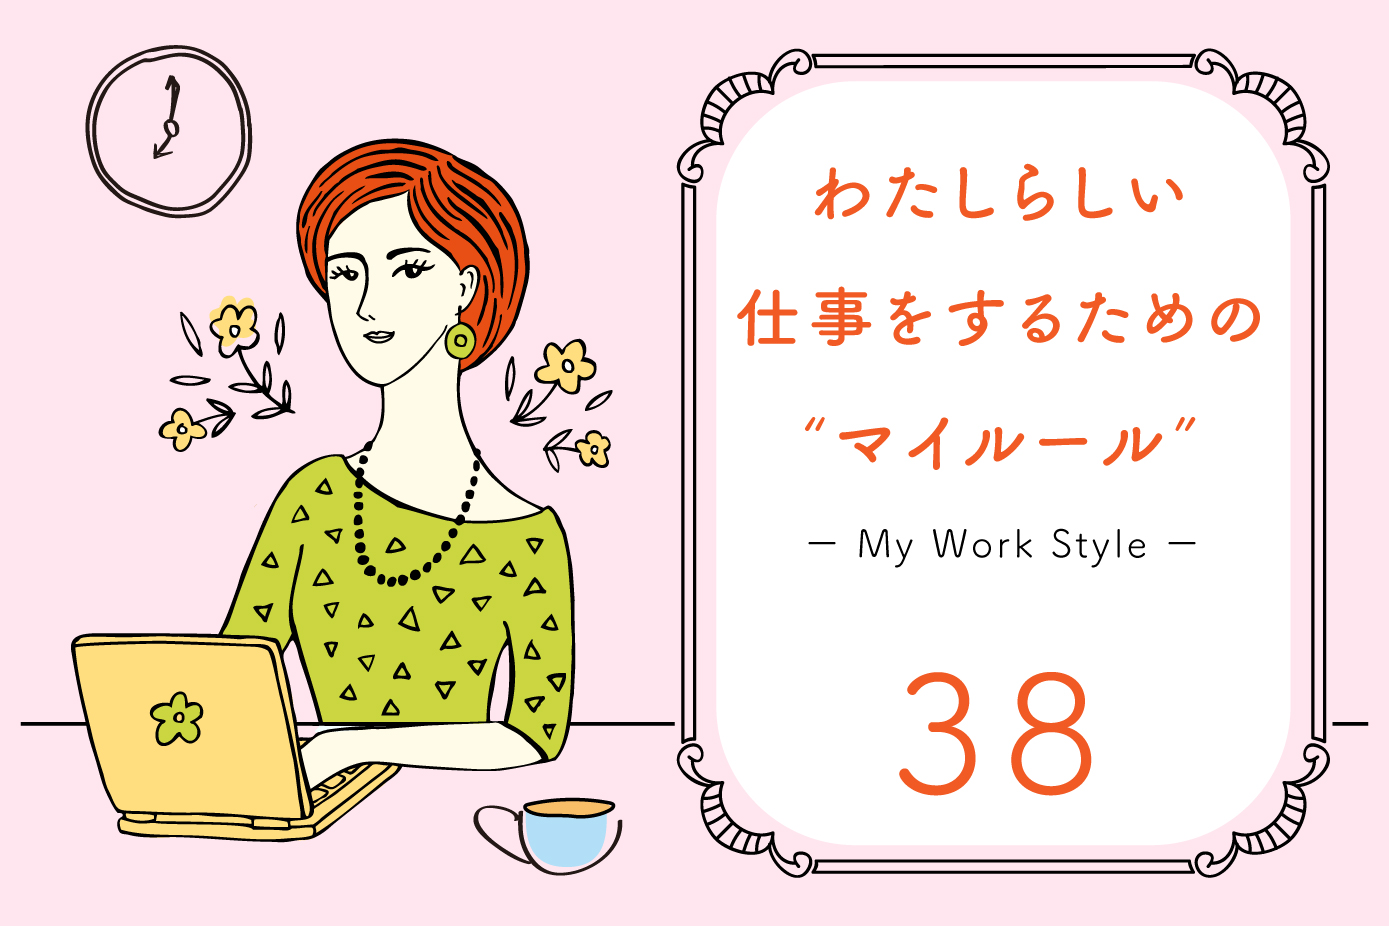 WorkStyle_マイルール_38